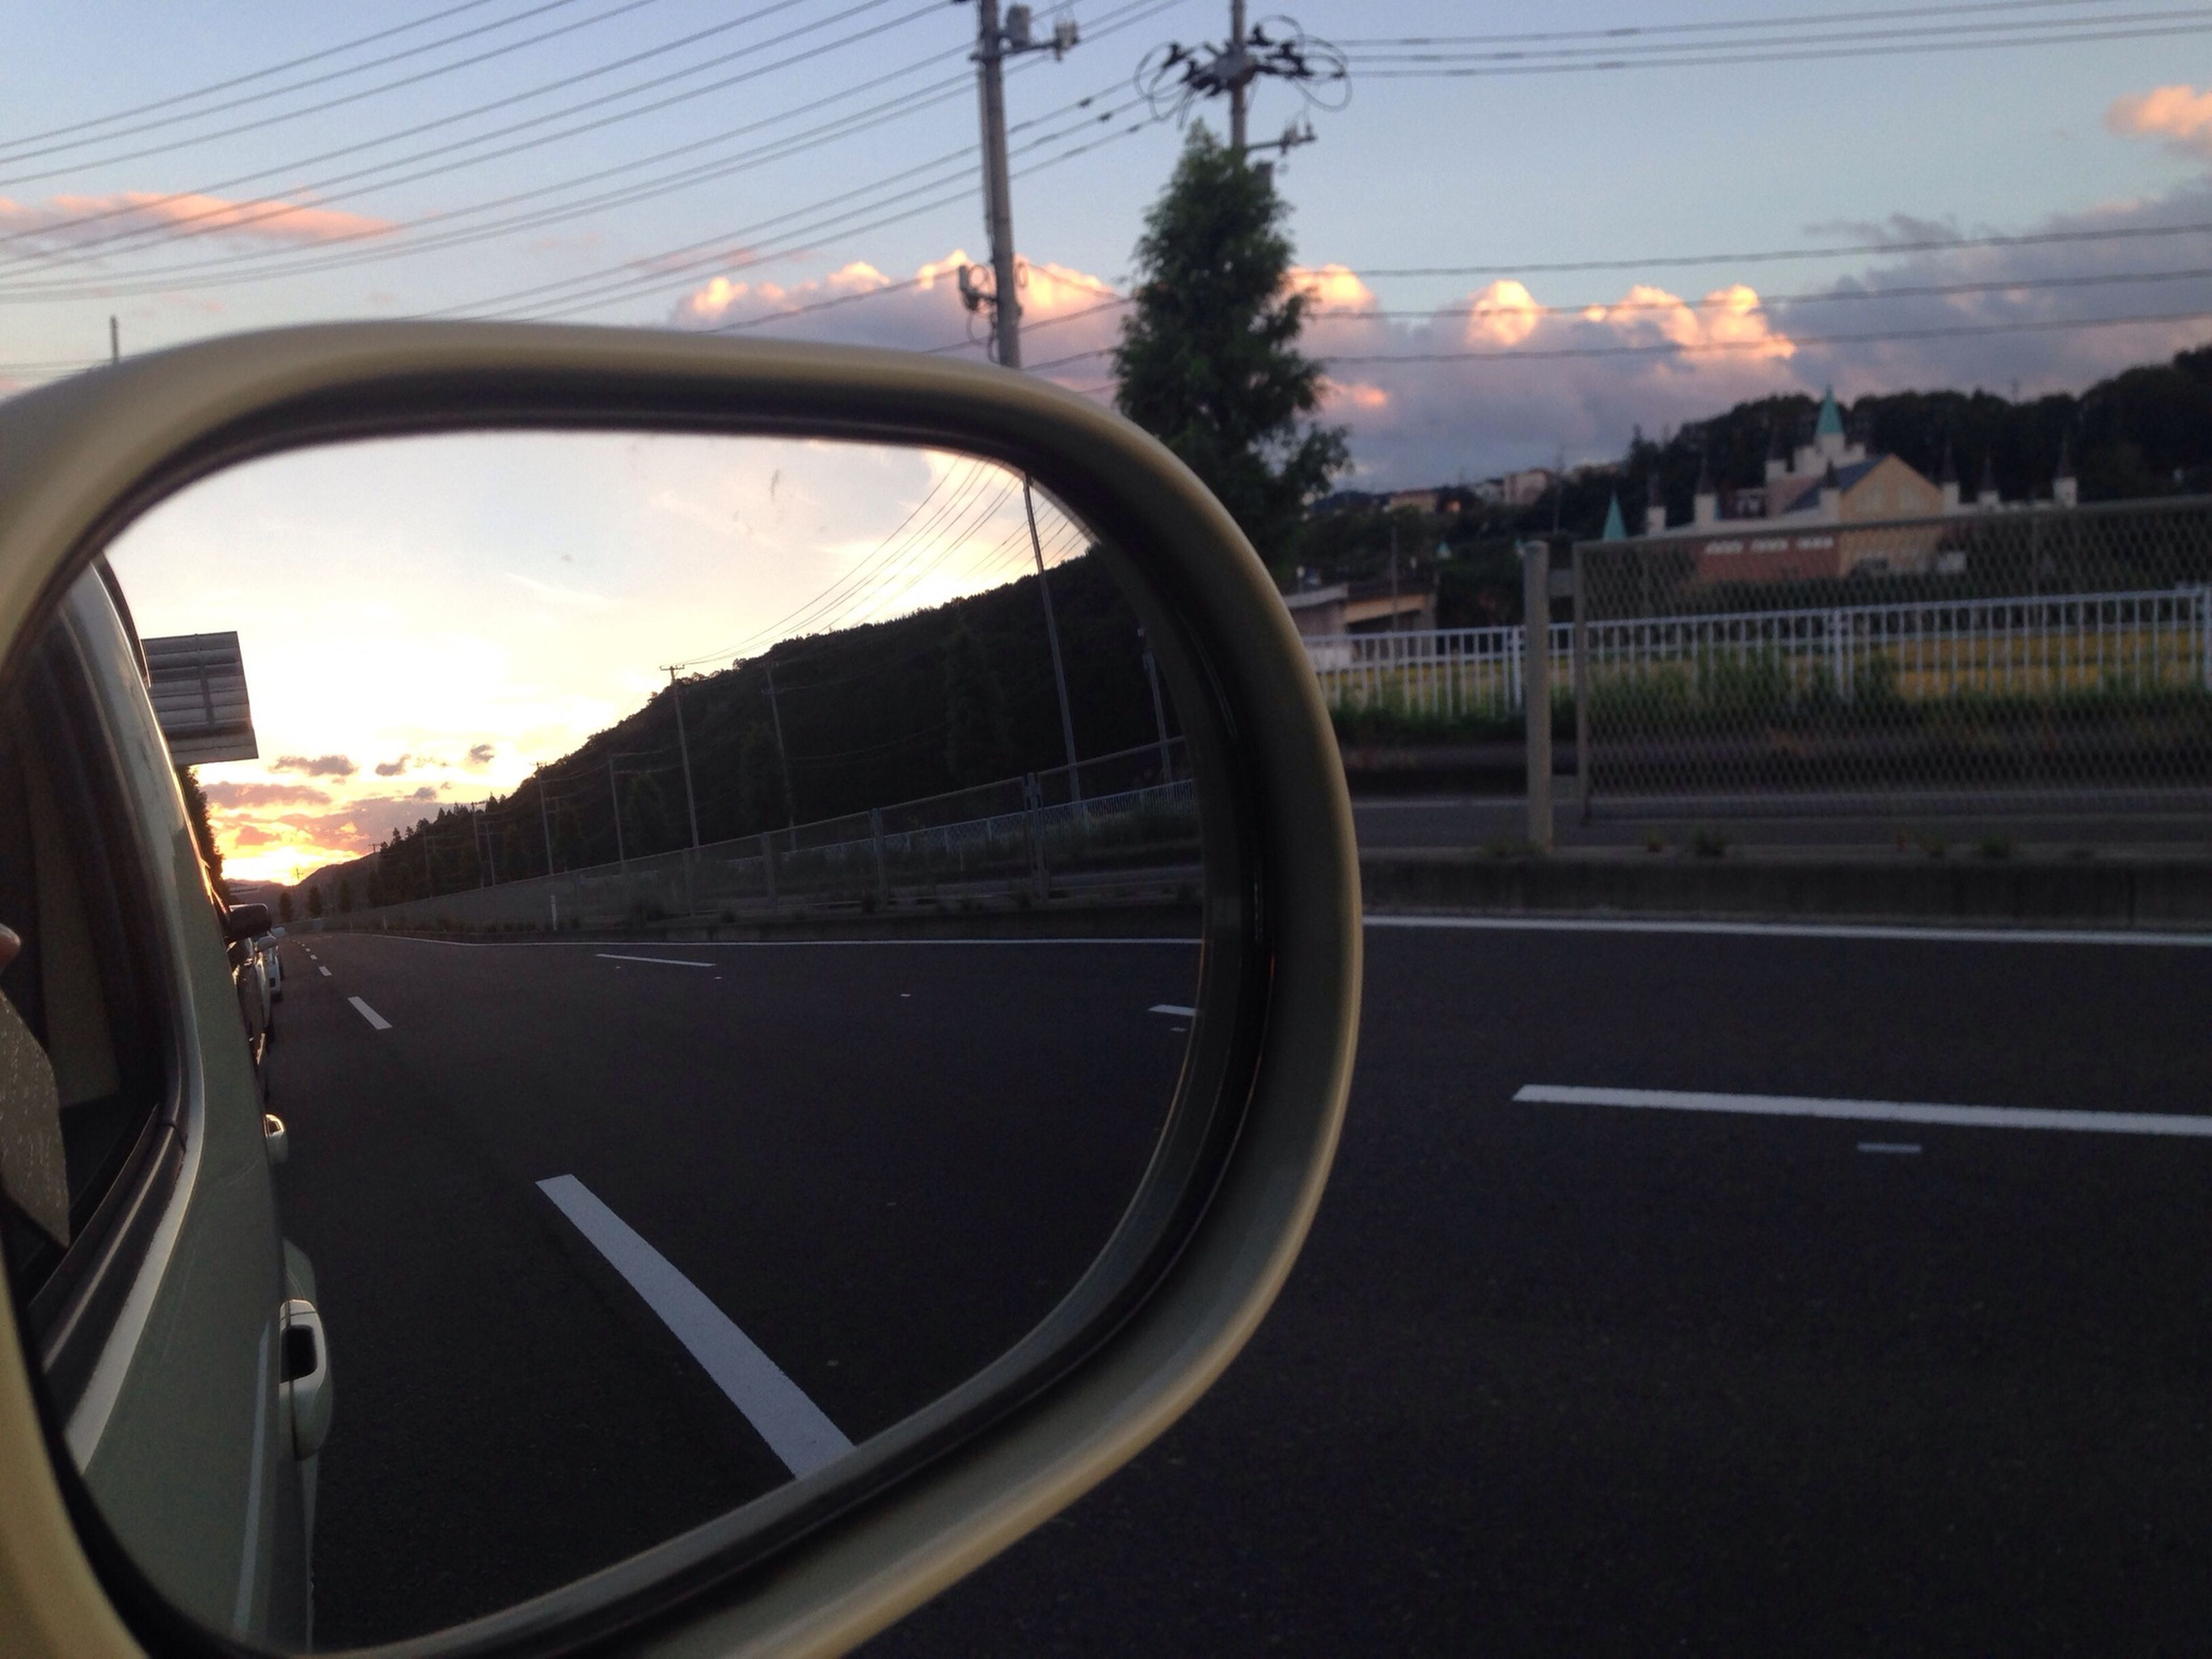 transportation, sky, road, sunset, car, mode of transport, land vehicle, side-view mirror, street, cloud - sky, reflection, landscape, tree, cloud, no people, outdoors, circle, transparent, vehicle interior, travel